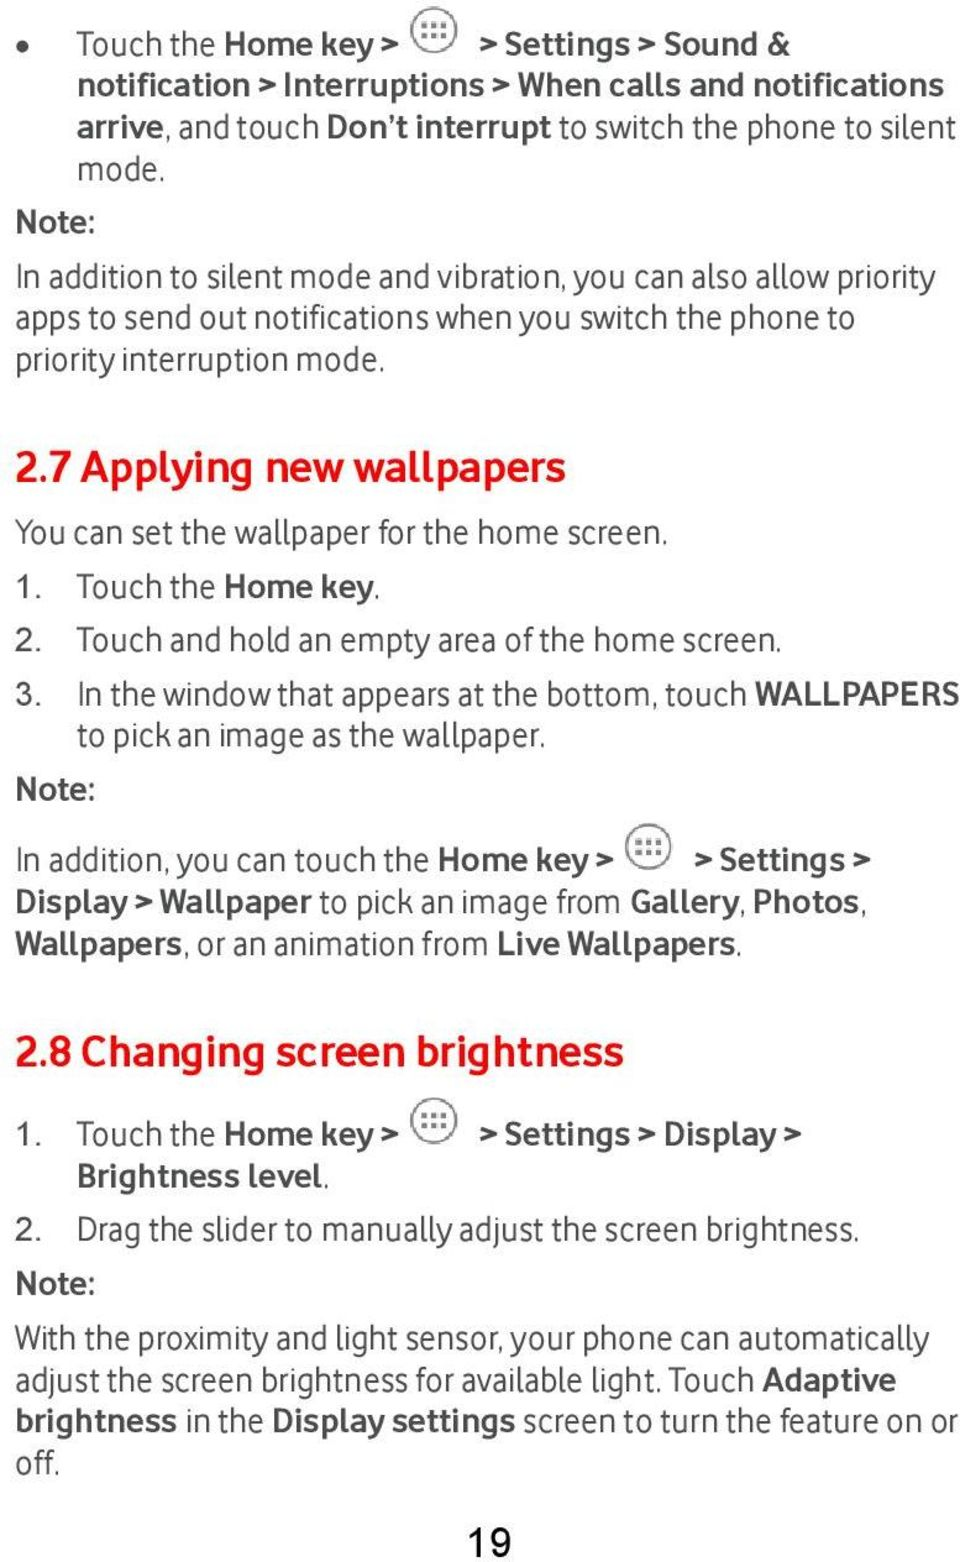 7 Applying new wallpapers You can set the wallpaper for the home screen. 1. Touch the Home key. 2. Touch and hold an empty area of the home screen. 3.